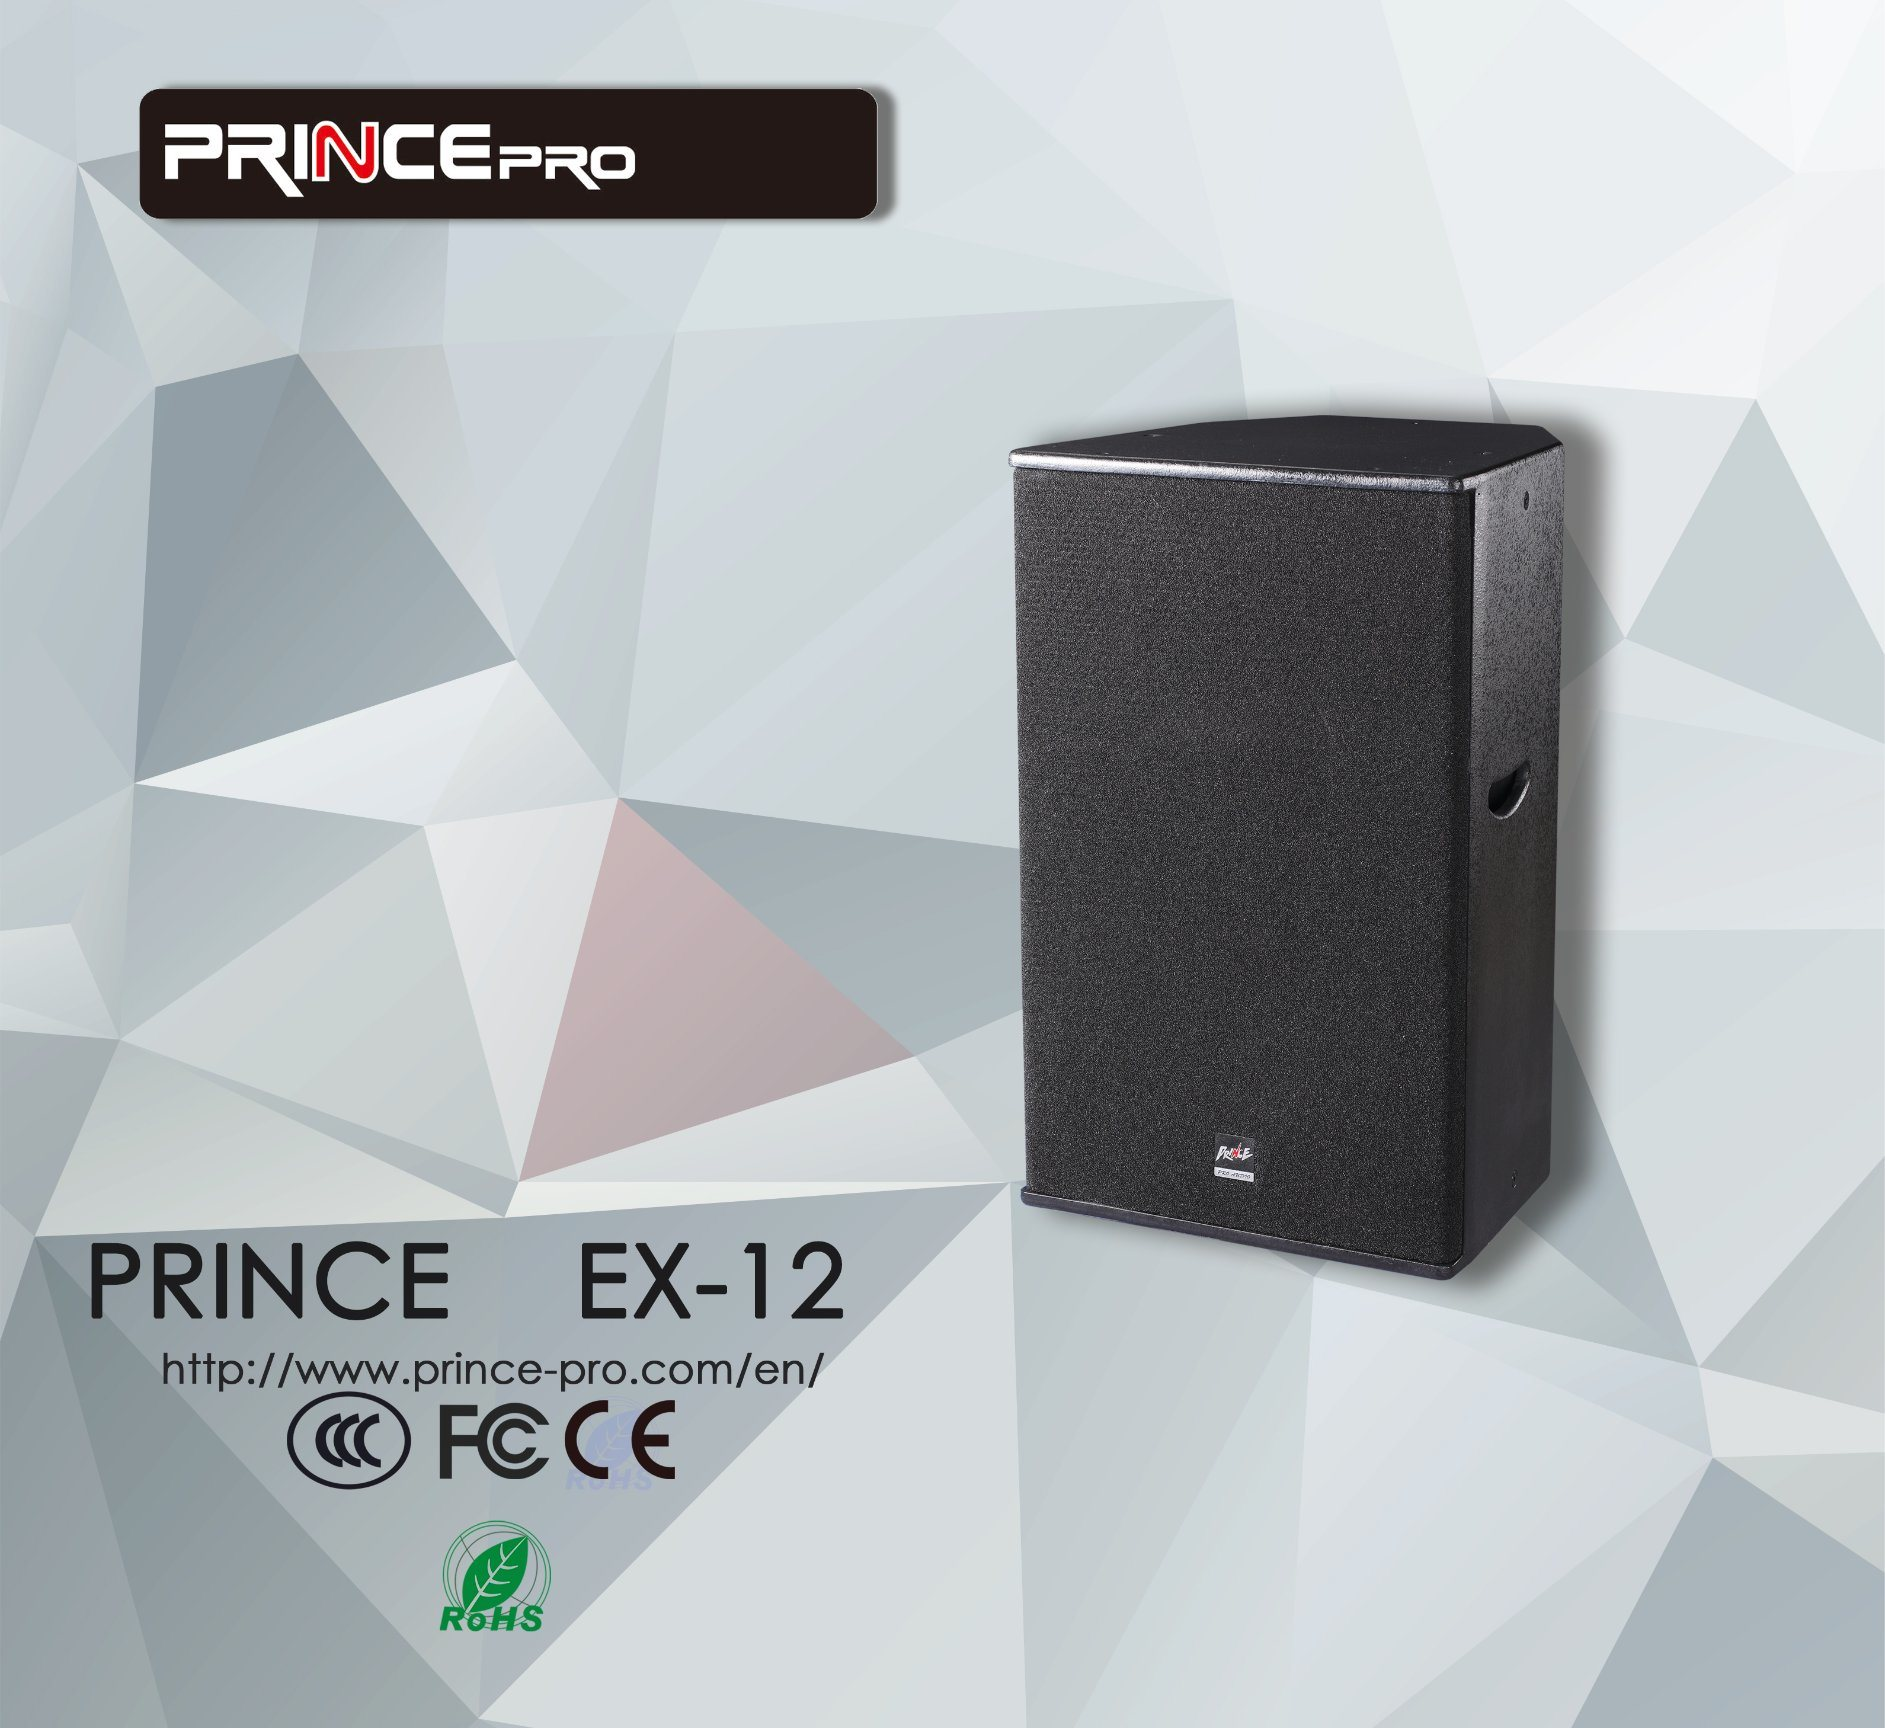 Prince dB Mixer Top PRO Audio Speaker